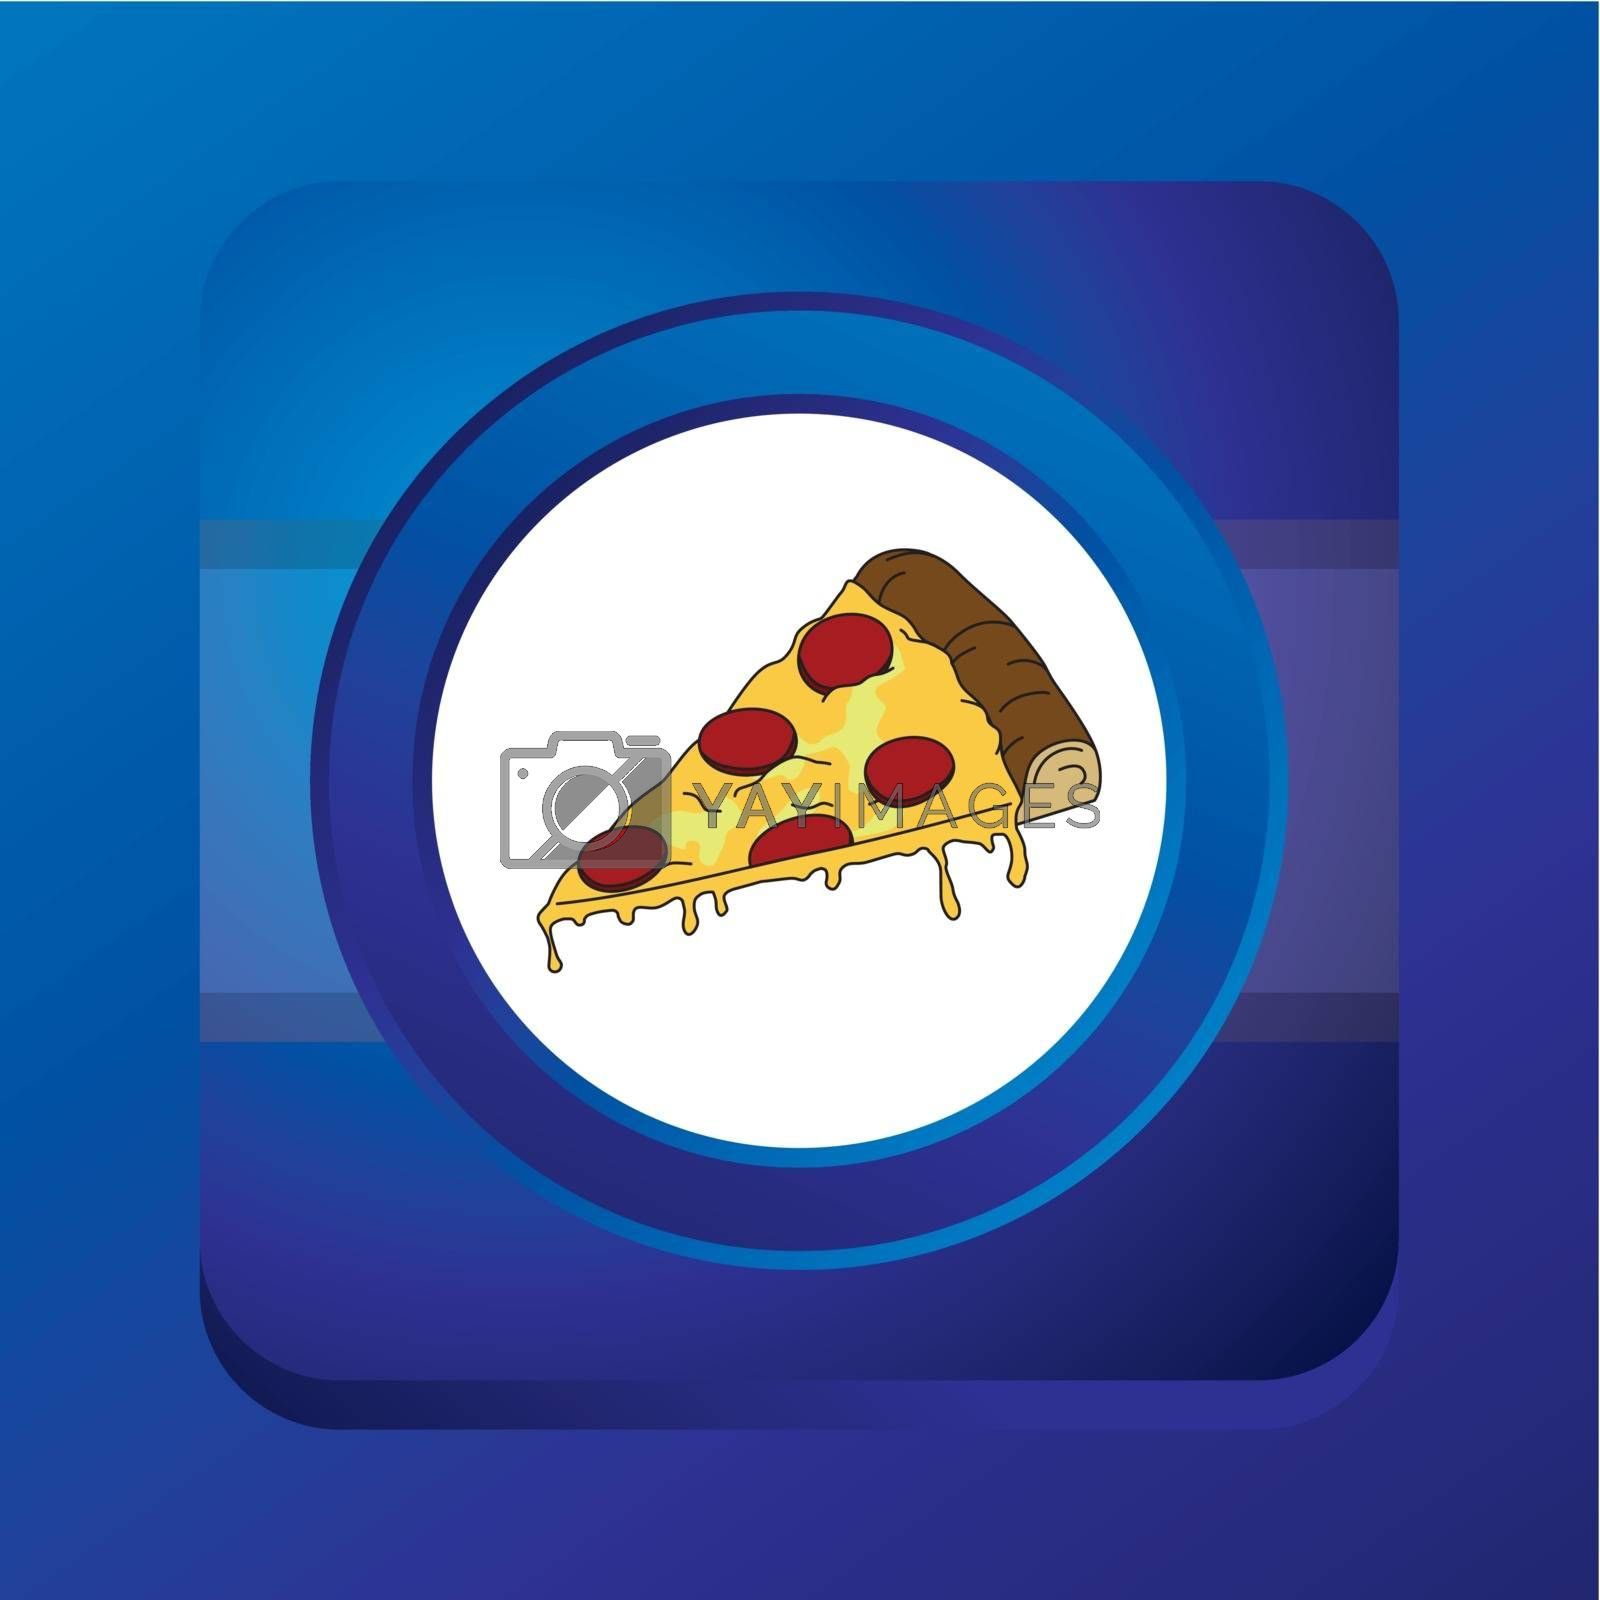 food and drink theme graphic art vector illustration design